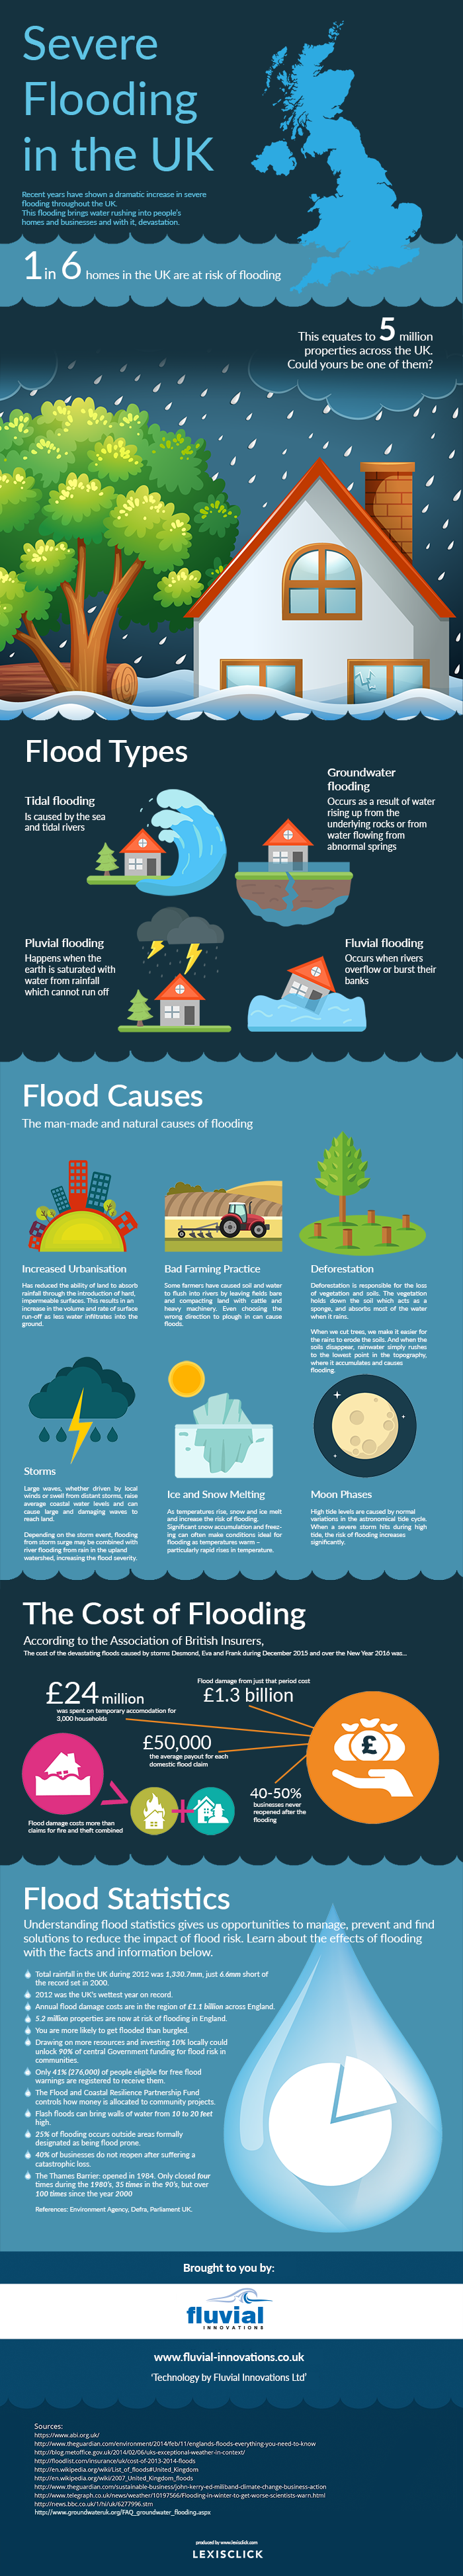 Flood Infographic - Causes of Flooding